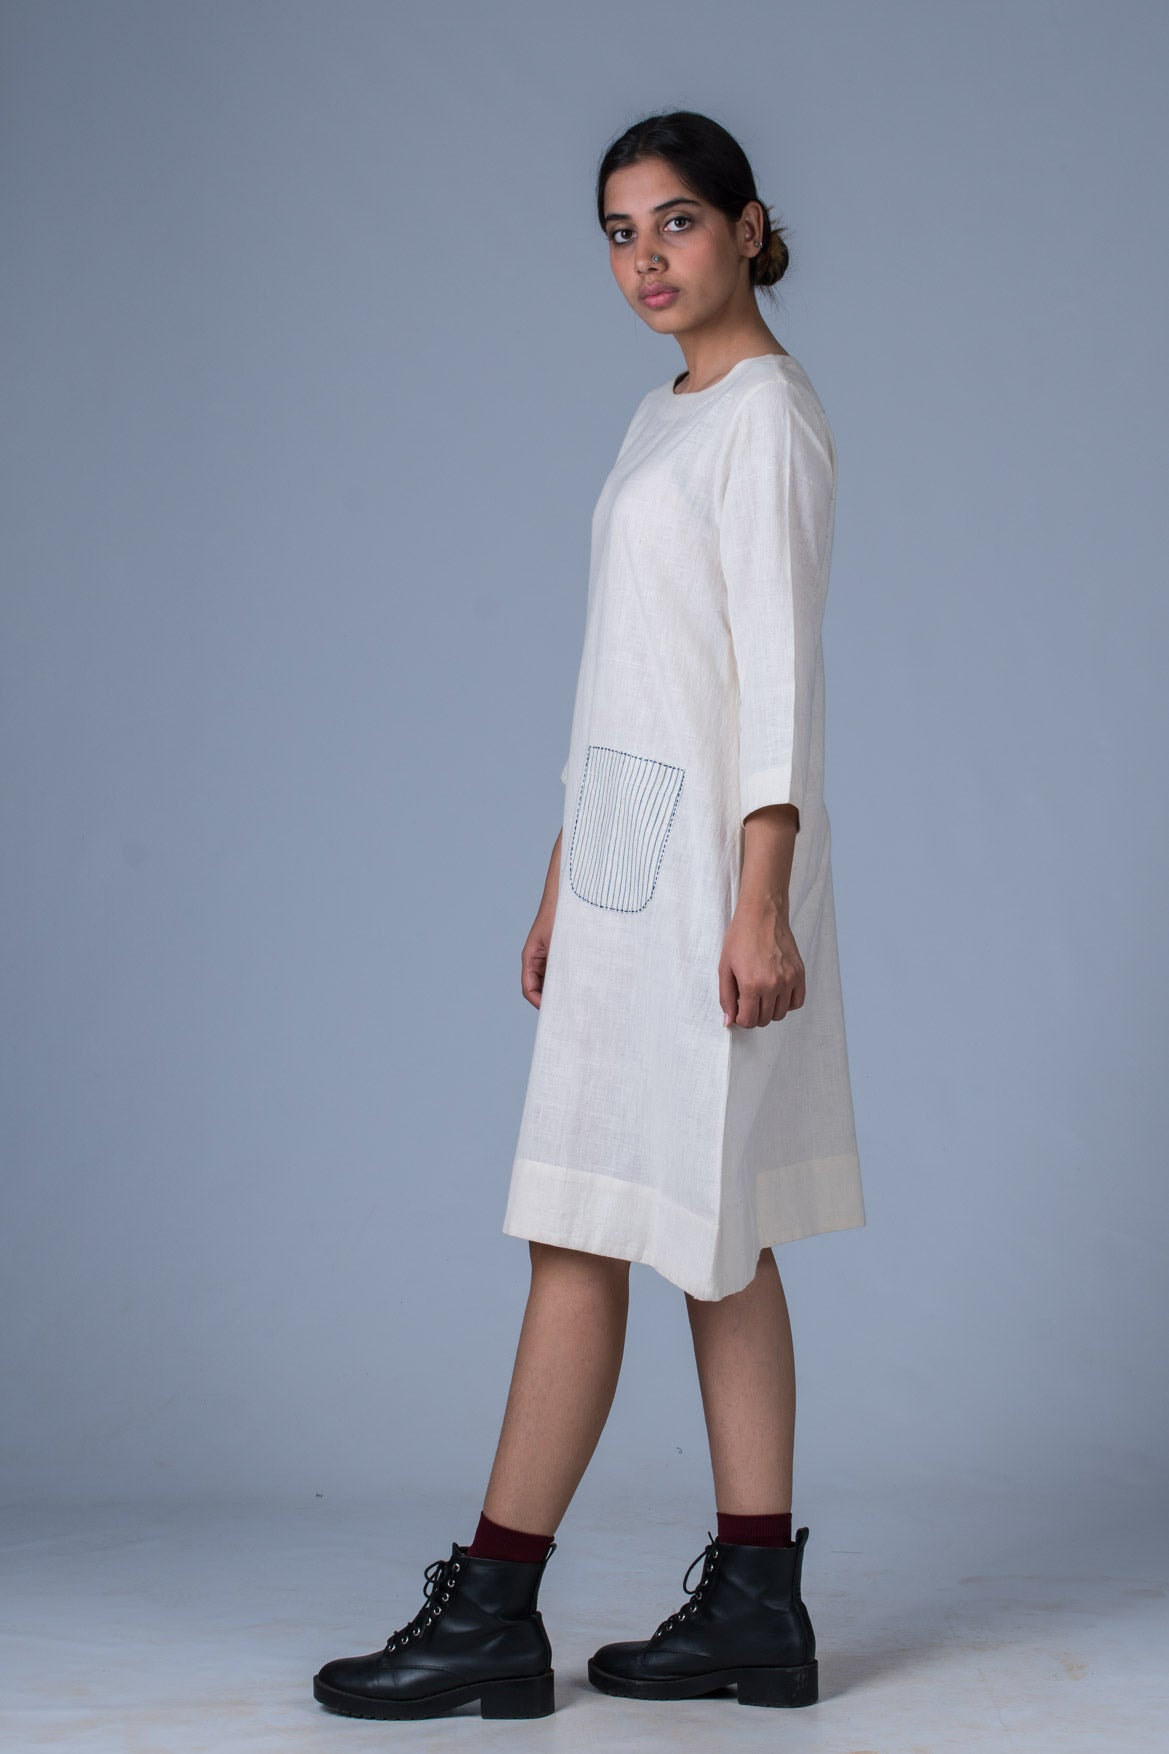 Off White Desi Khadi Dress - PARINA - Upasana Design Studio